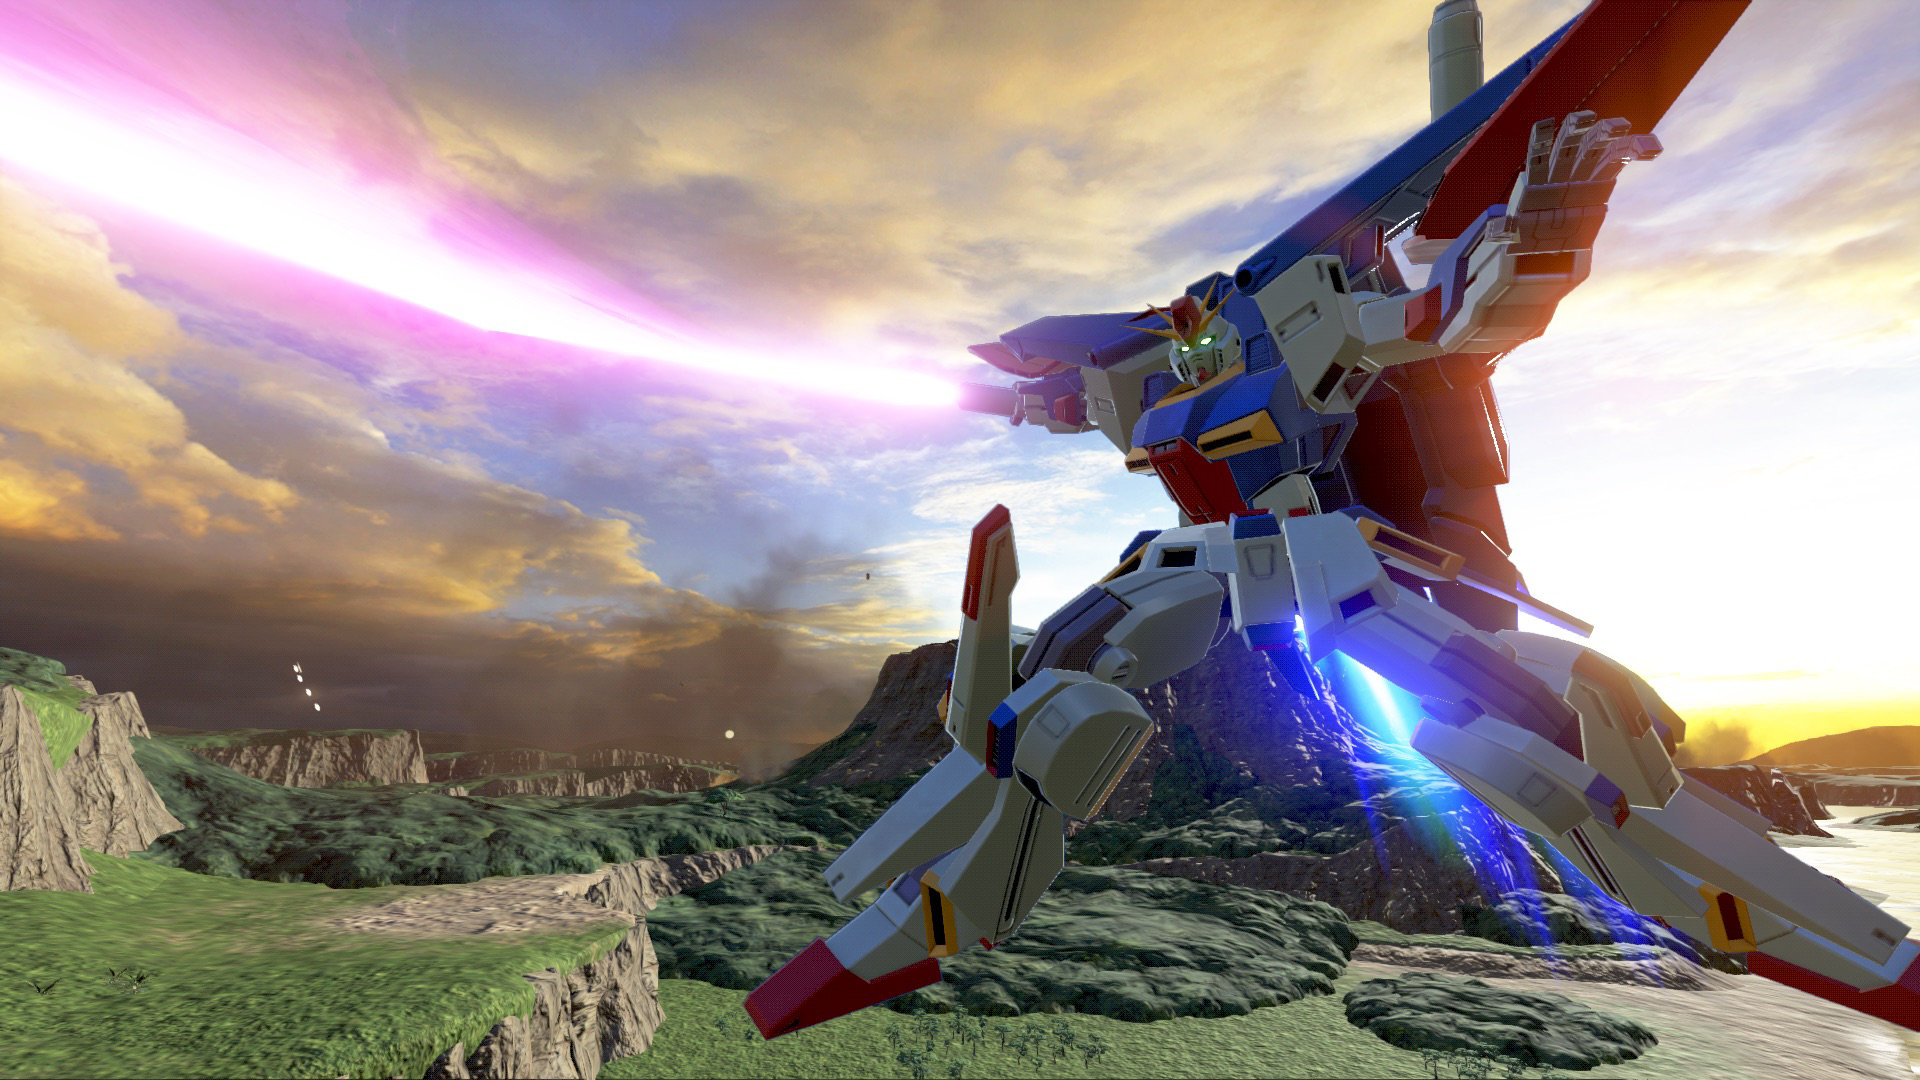 gundam-versus-screen-02-ps4-us-7june17?$